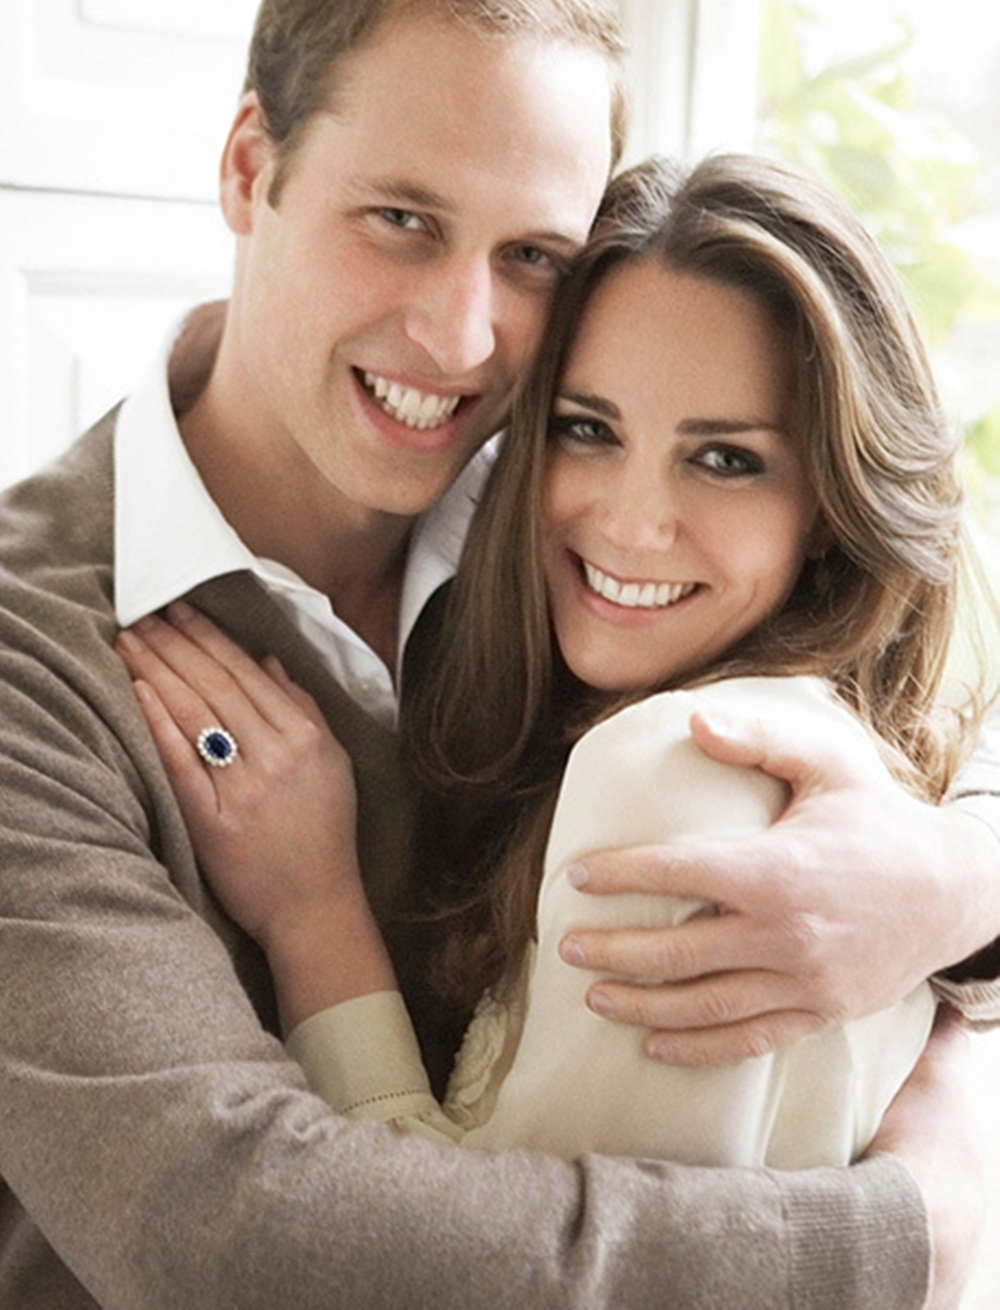 https://i2.wp.com/images4.fanpop.com/image/photos/18800000/William-Kate-prince-william-and-kate-middleton-18854456-1000-1310.jpg